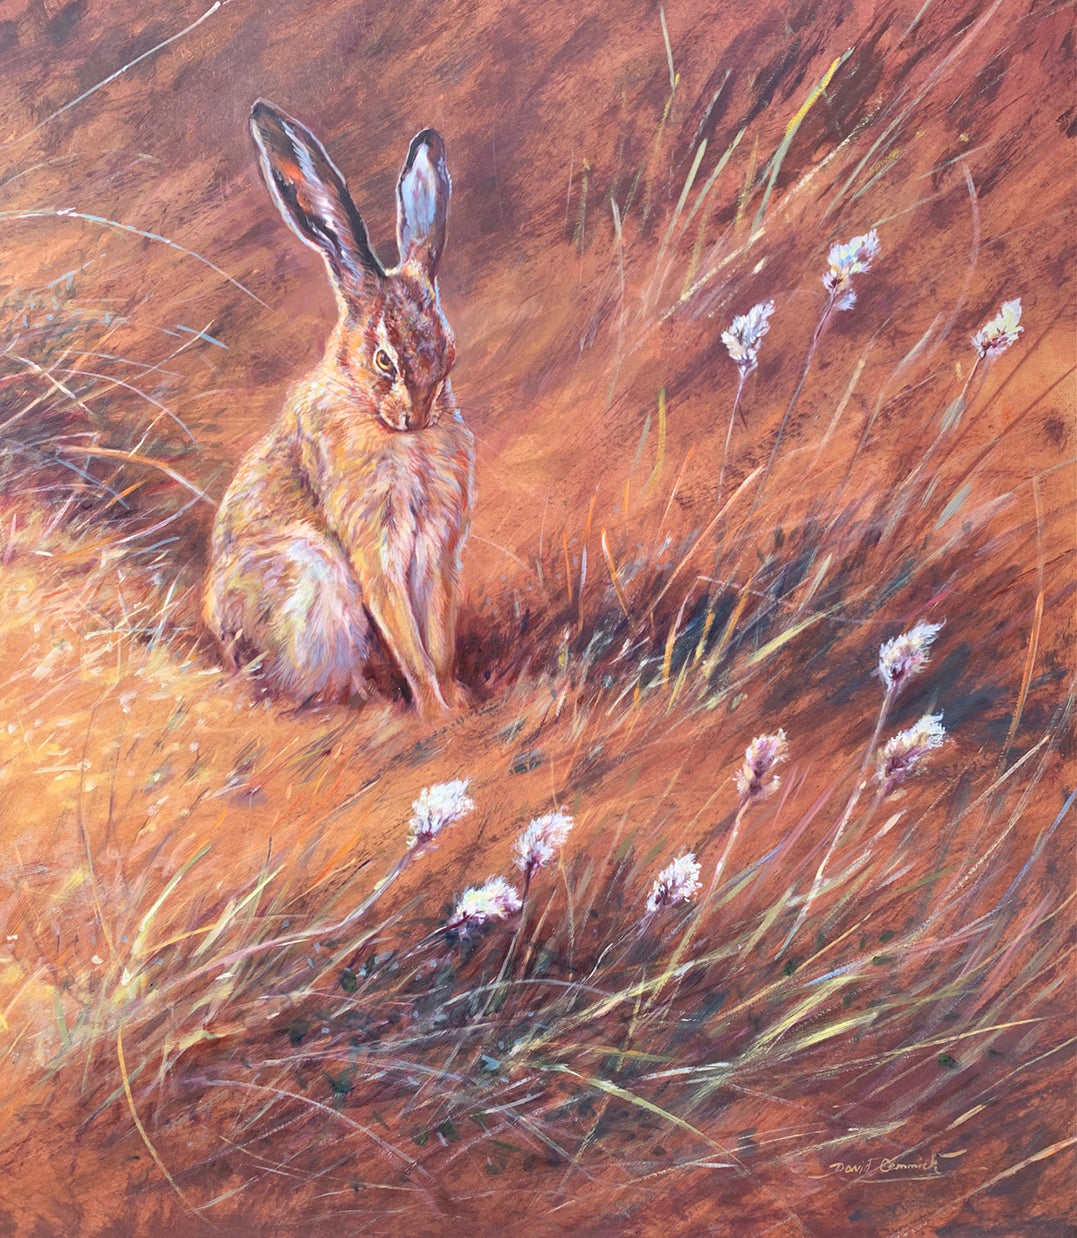 'Cotton grass morning' - Original Oil by David Cemmick - 74 x 65cm